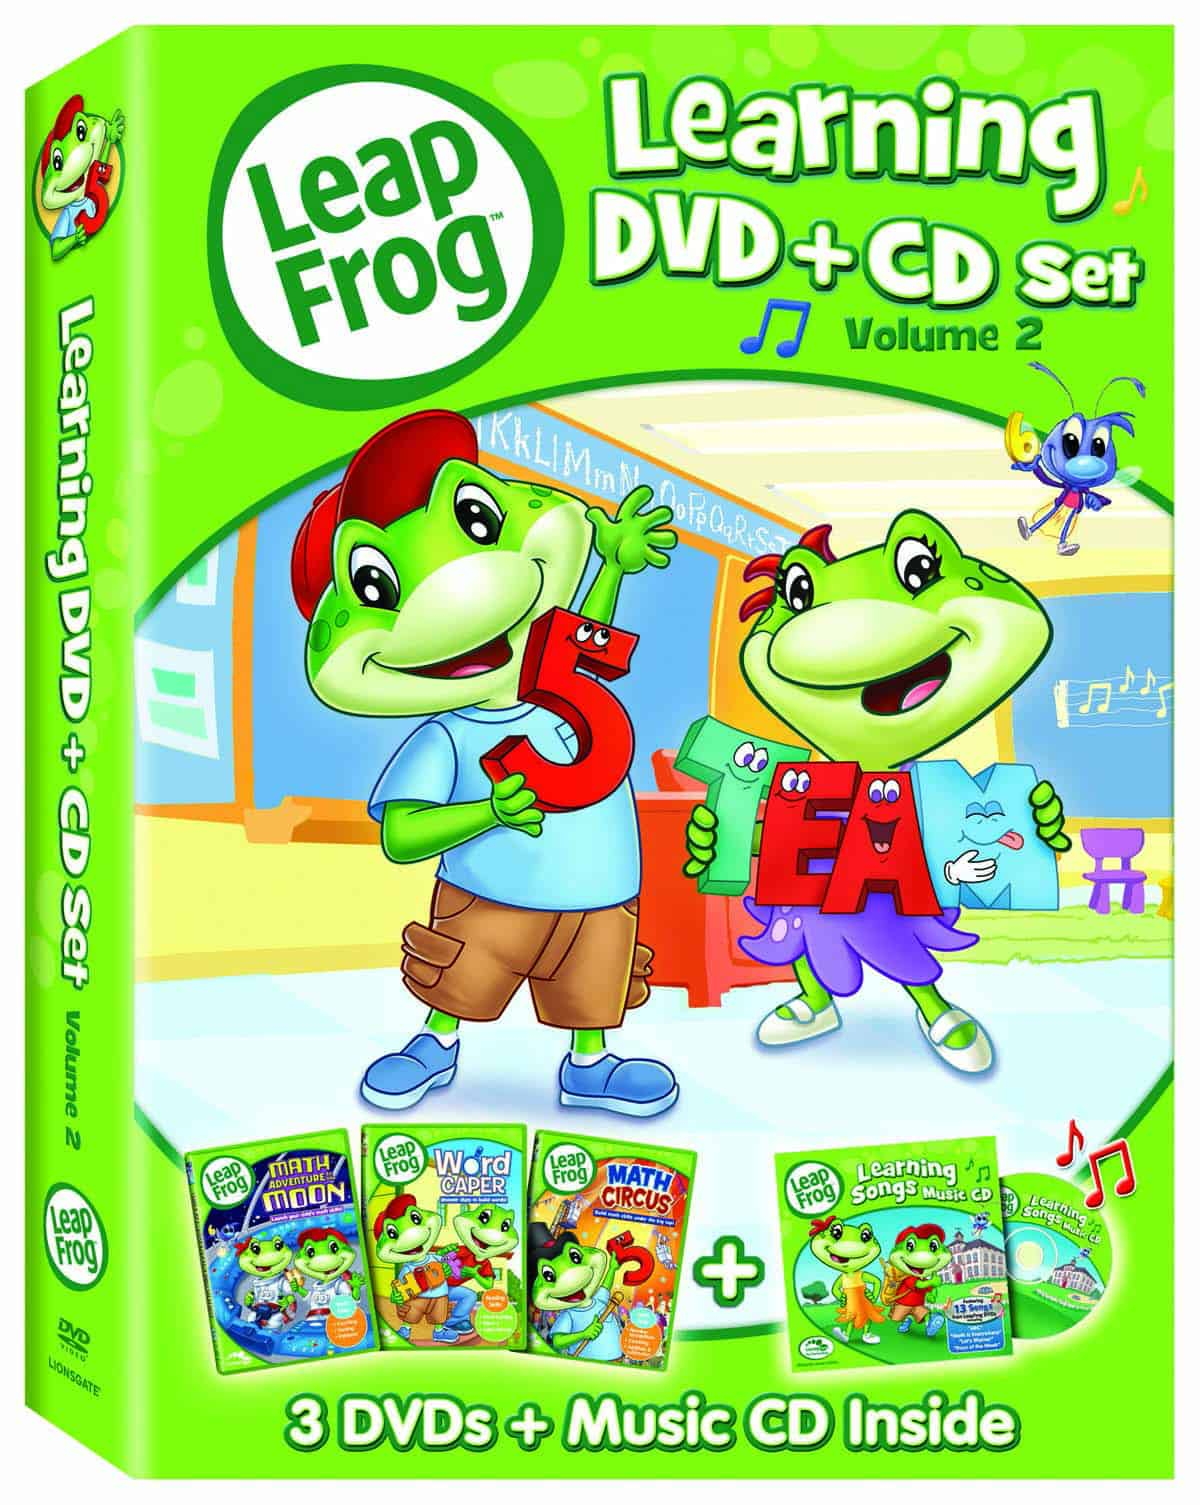 LeapFrog Learning DVD + CD Set, Volume 2‏